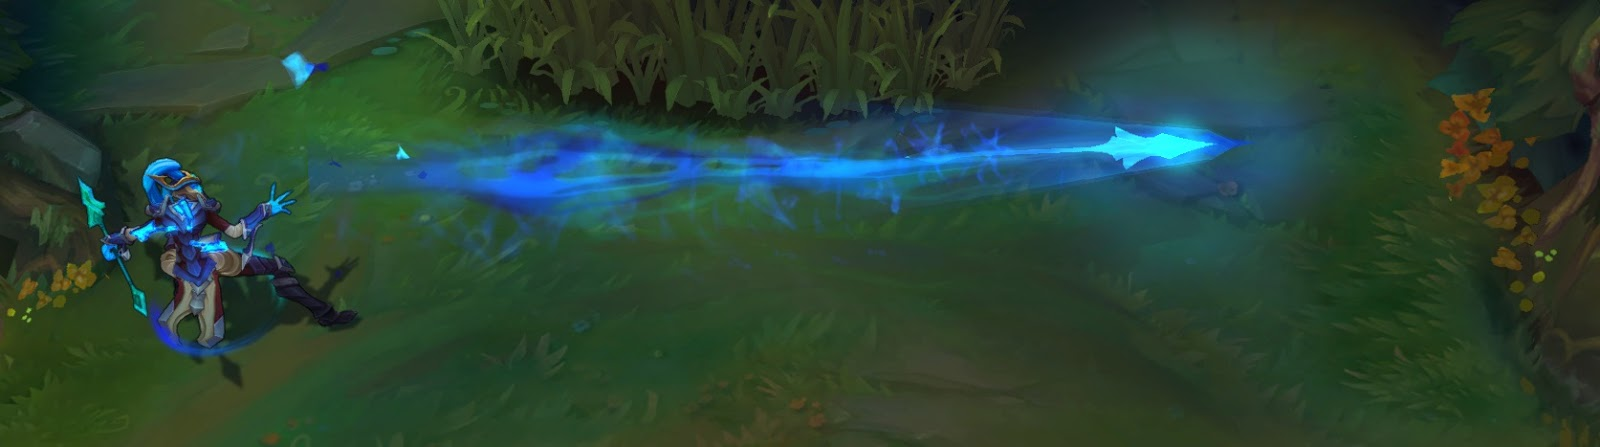 how to get championship riven on pbe